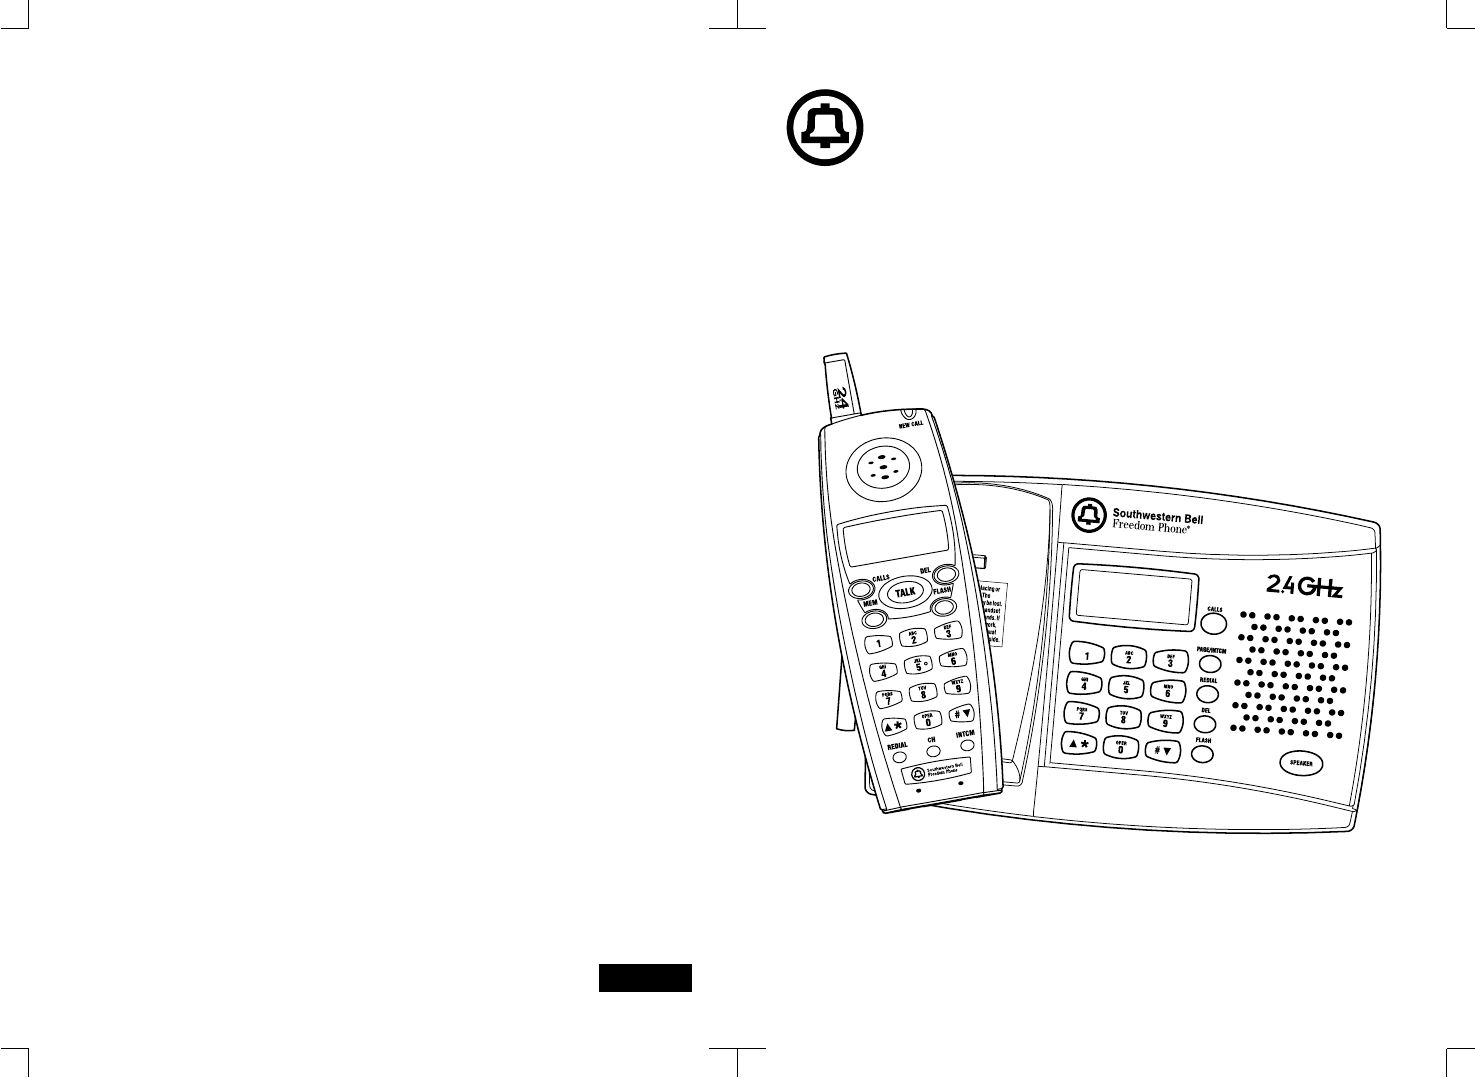 Southwestern Bell Cordless Telephone GH3028AT User Guide